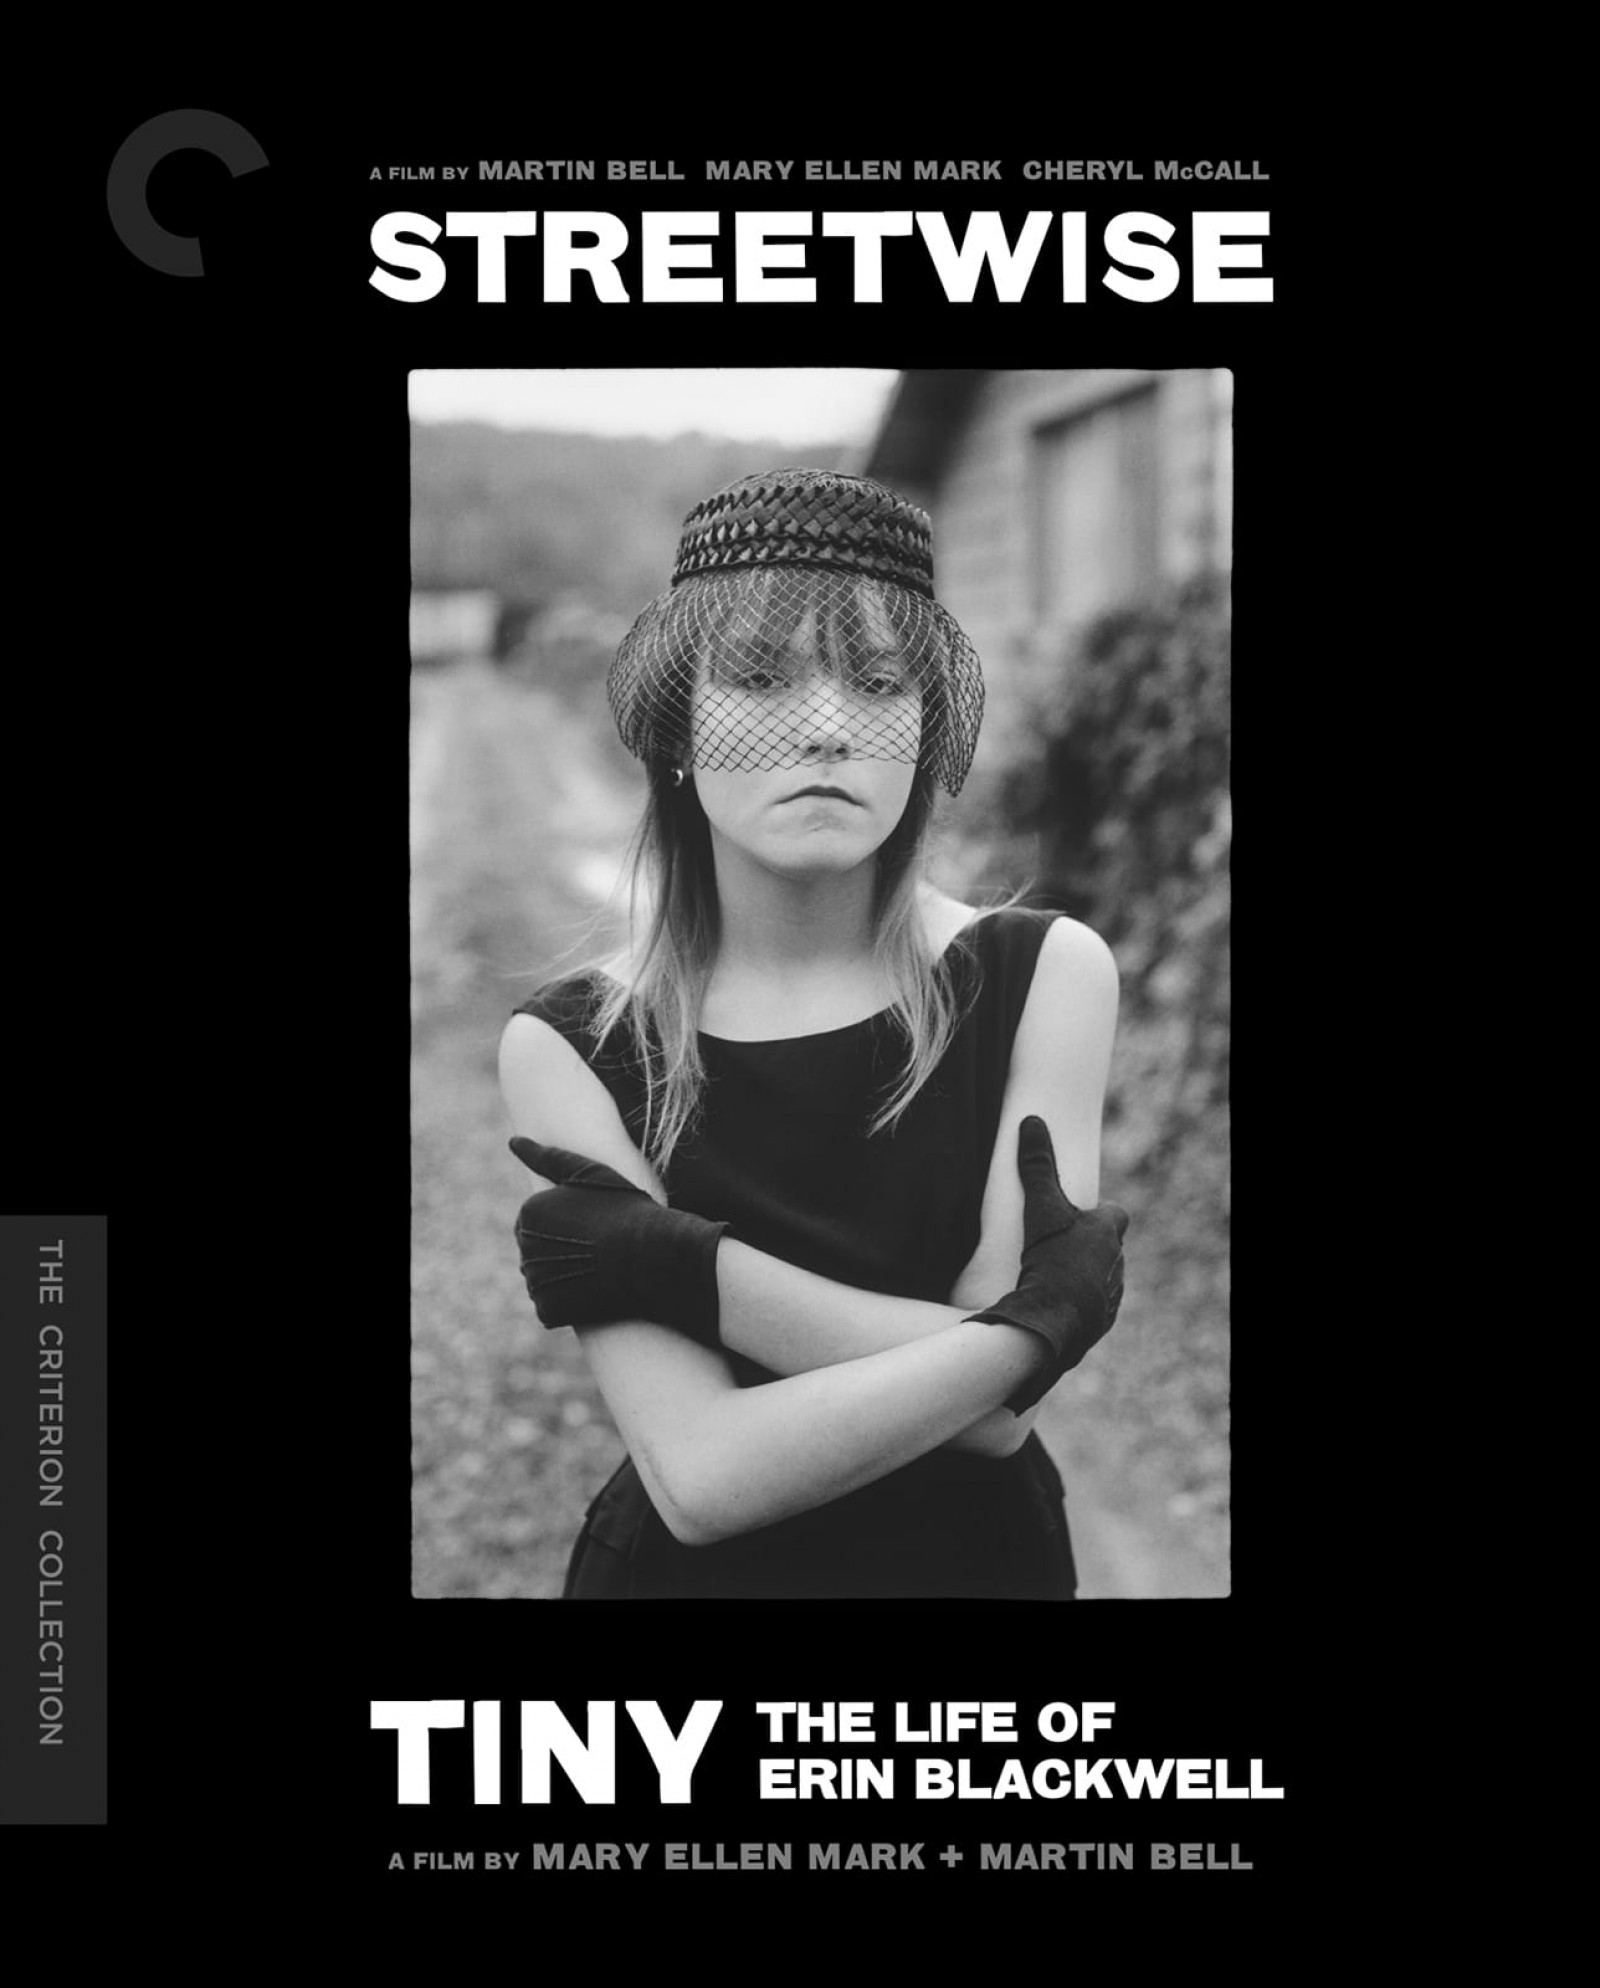 Streetwise/Tiny: The Life of Erin Blackwell